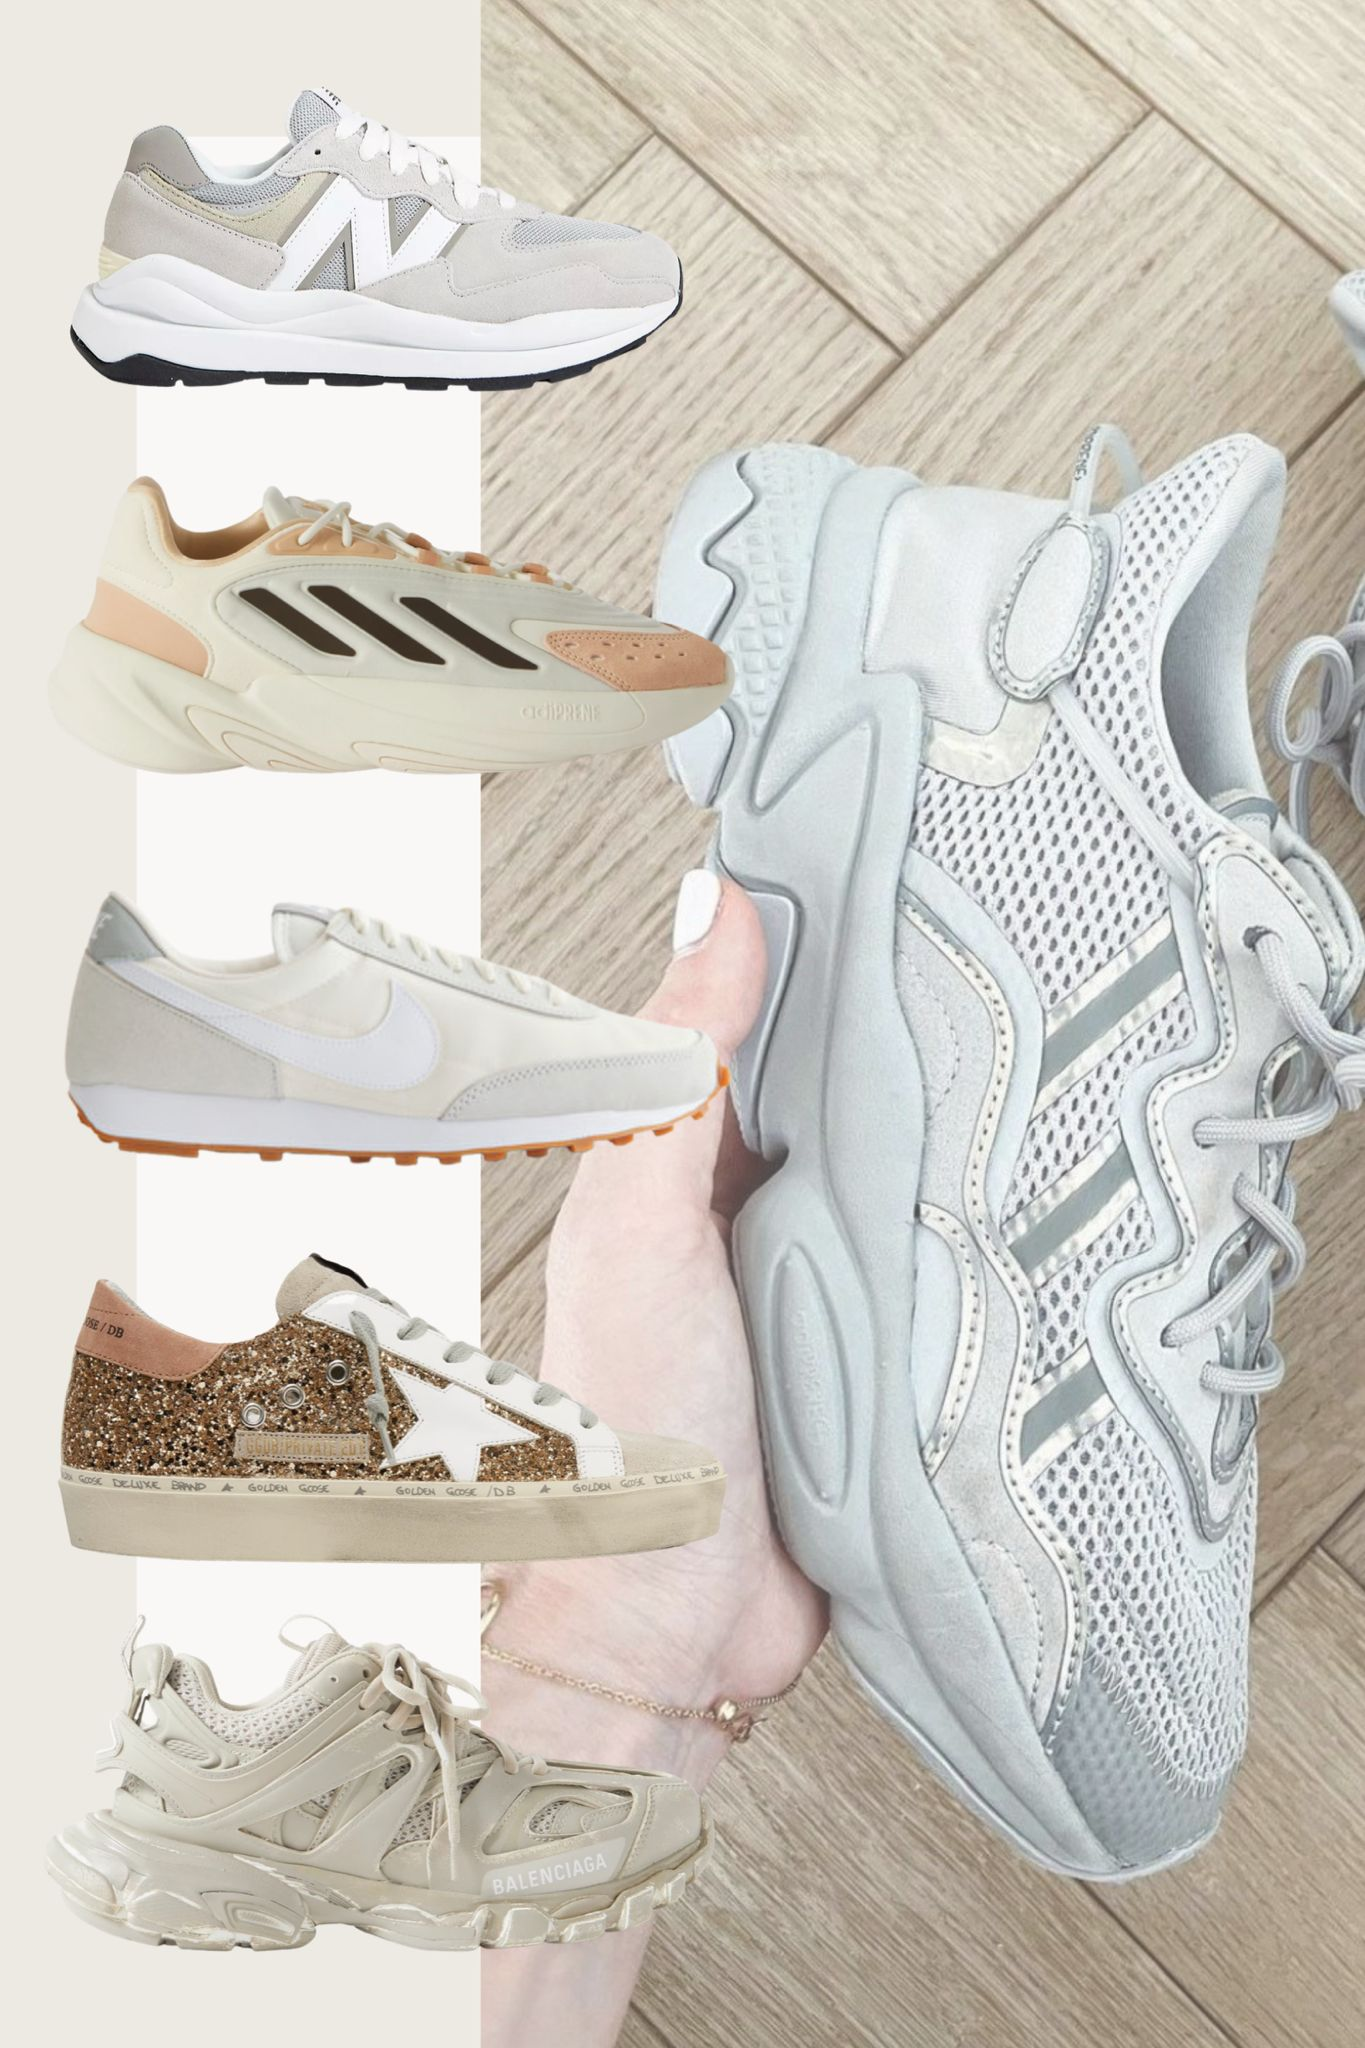 OUR TRAINER LUST LIST